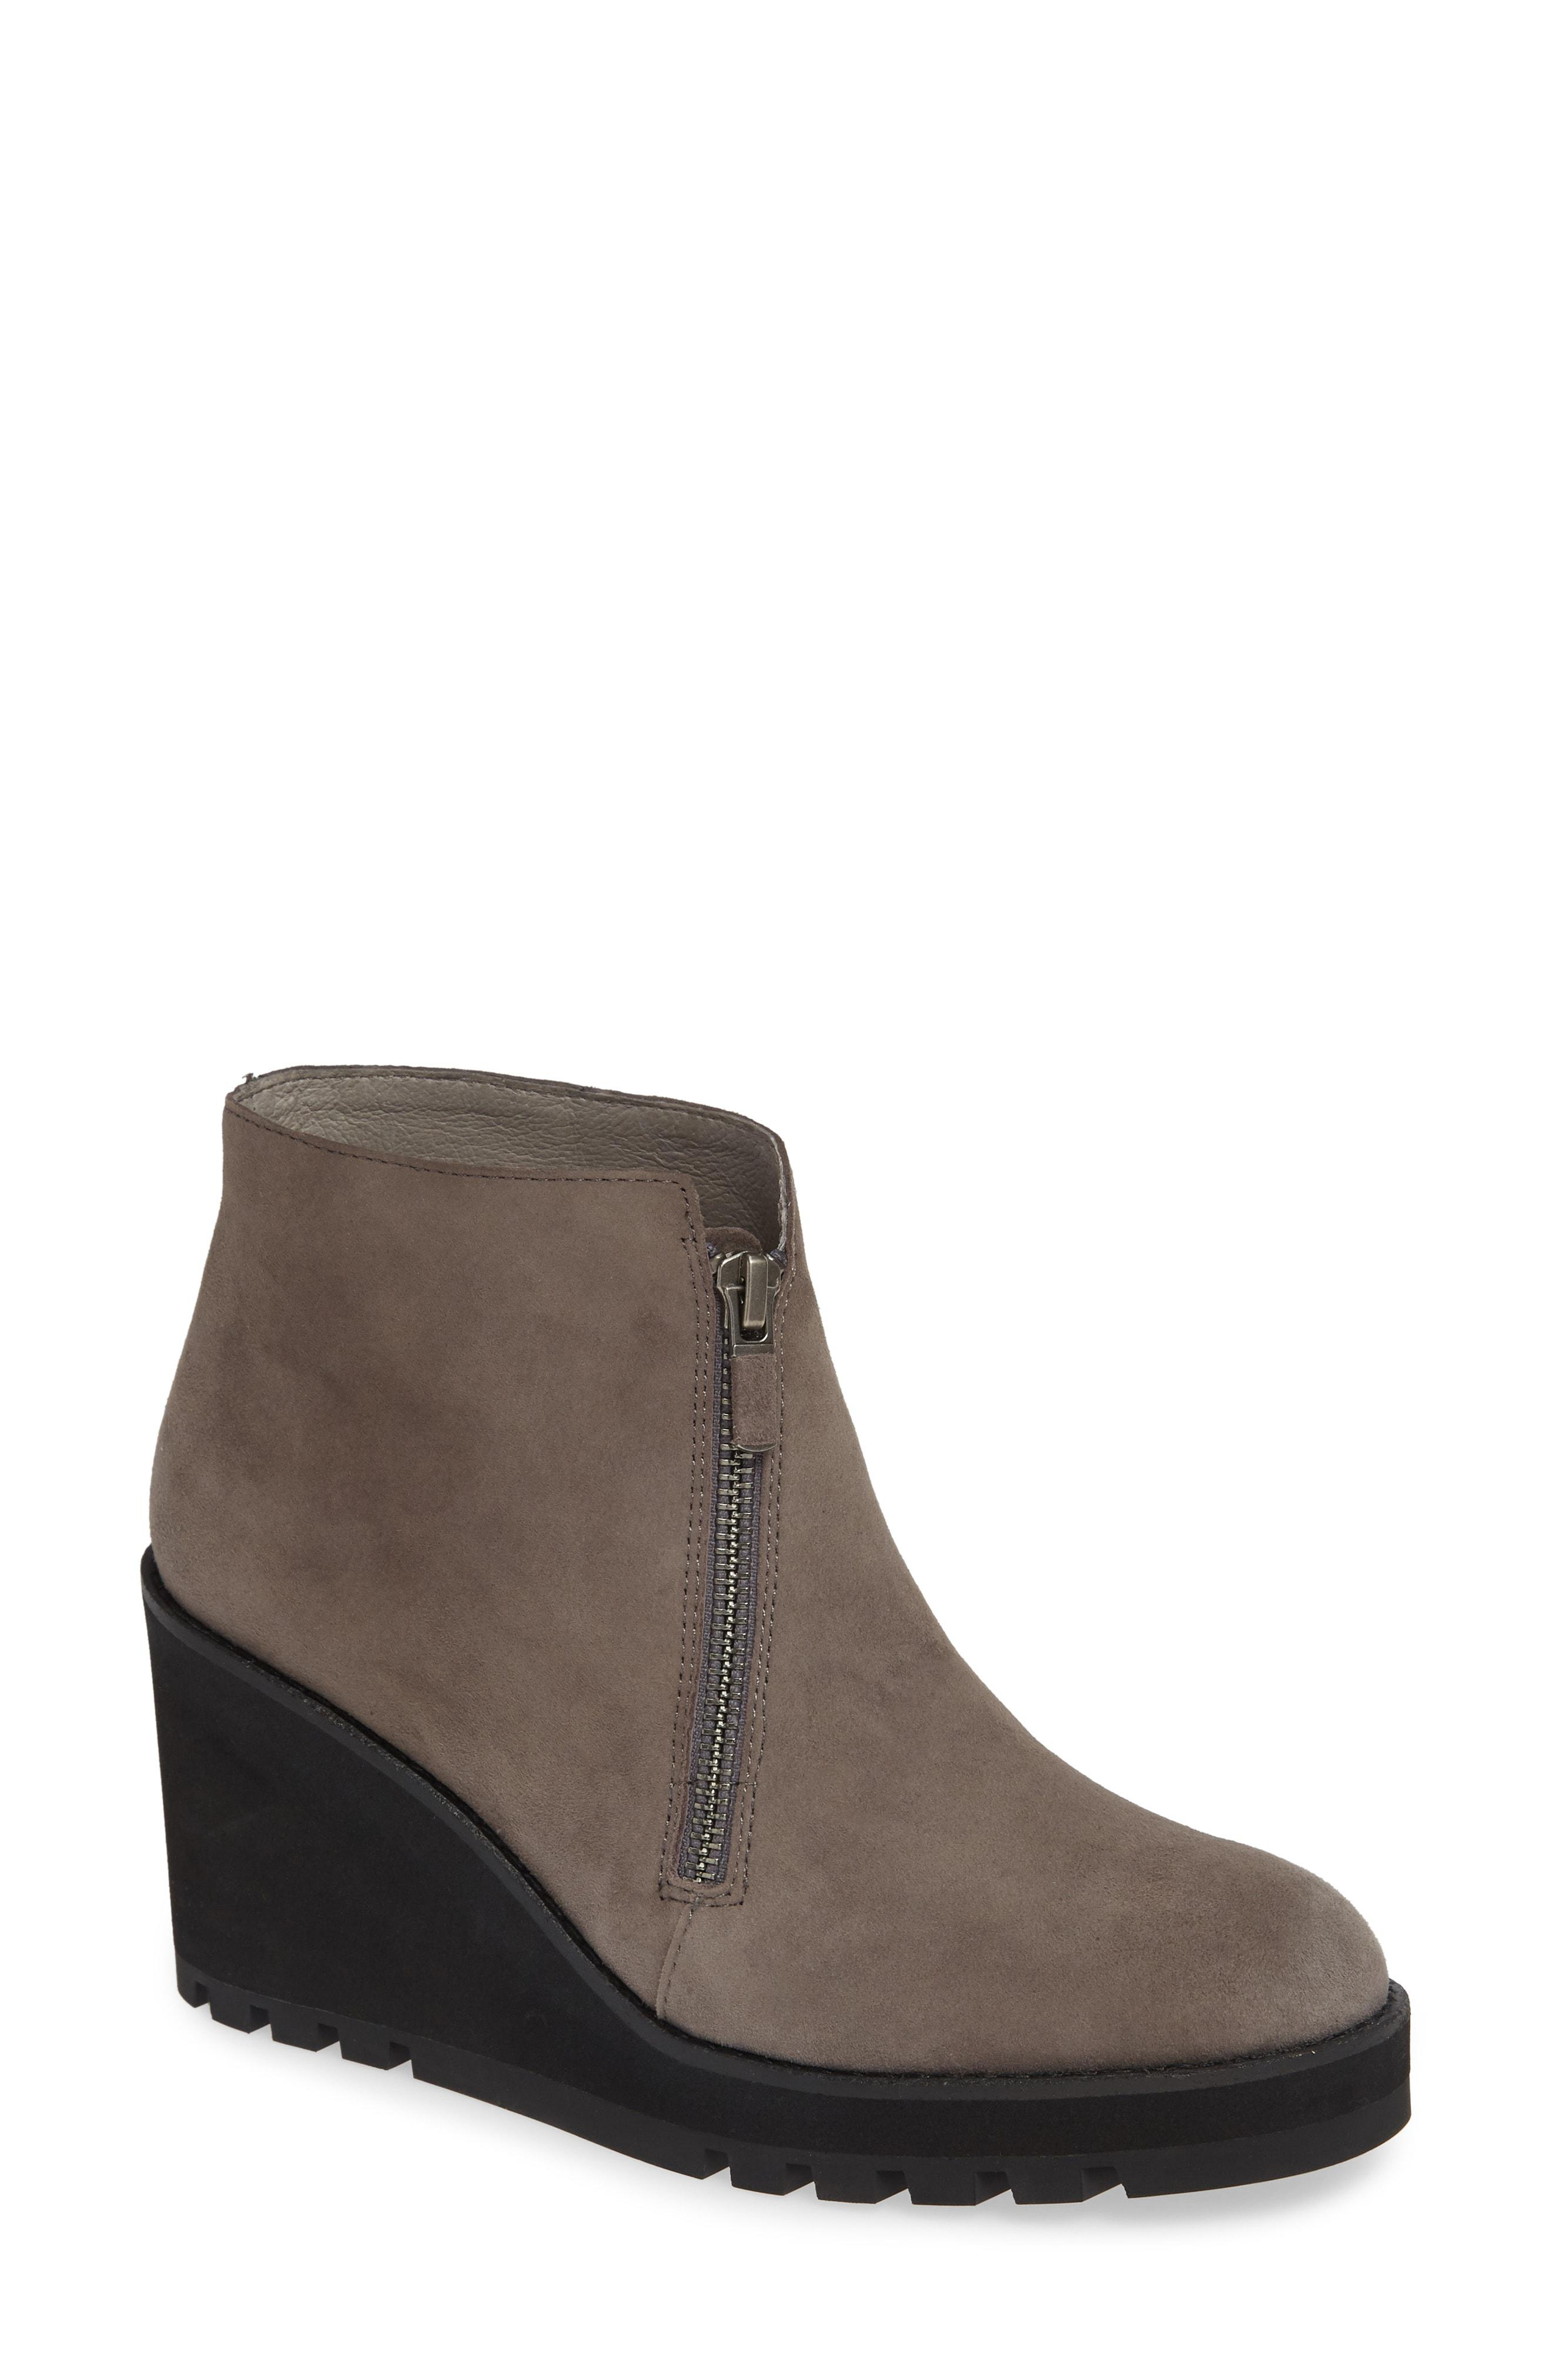 7100c5e3422 Lyst - Eileen Fisher Alto Wedge Bootie in Gray